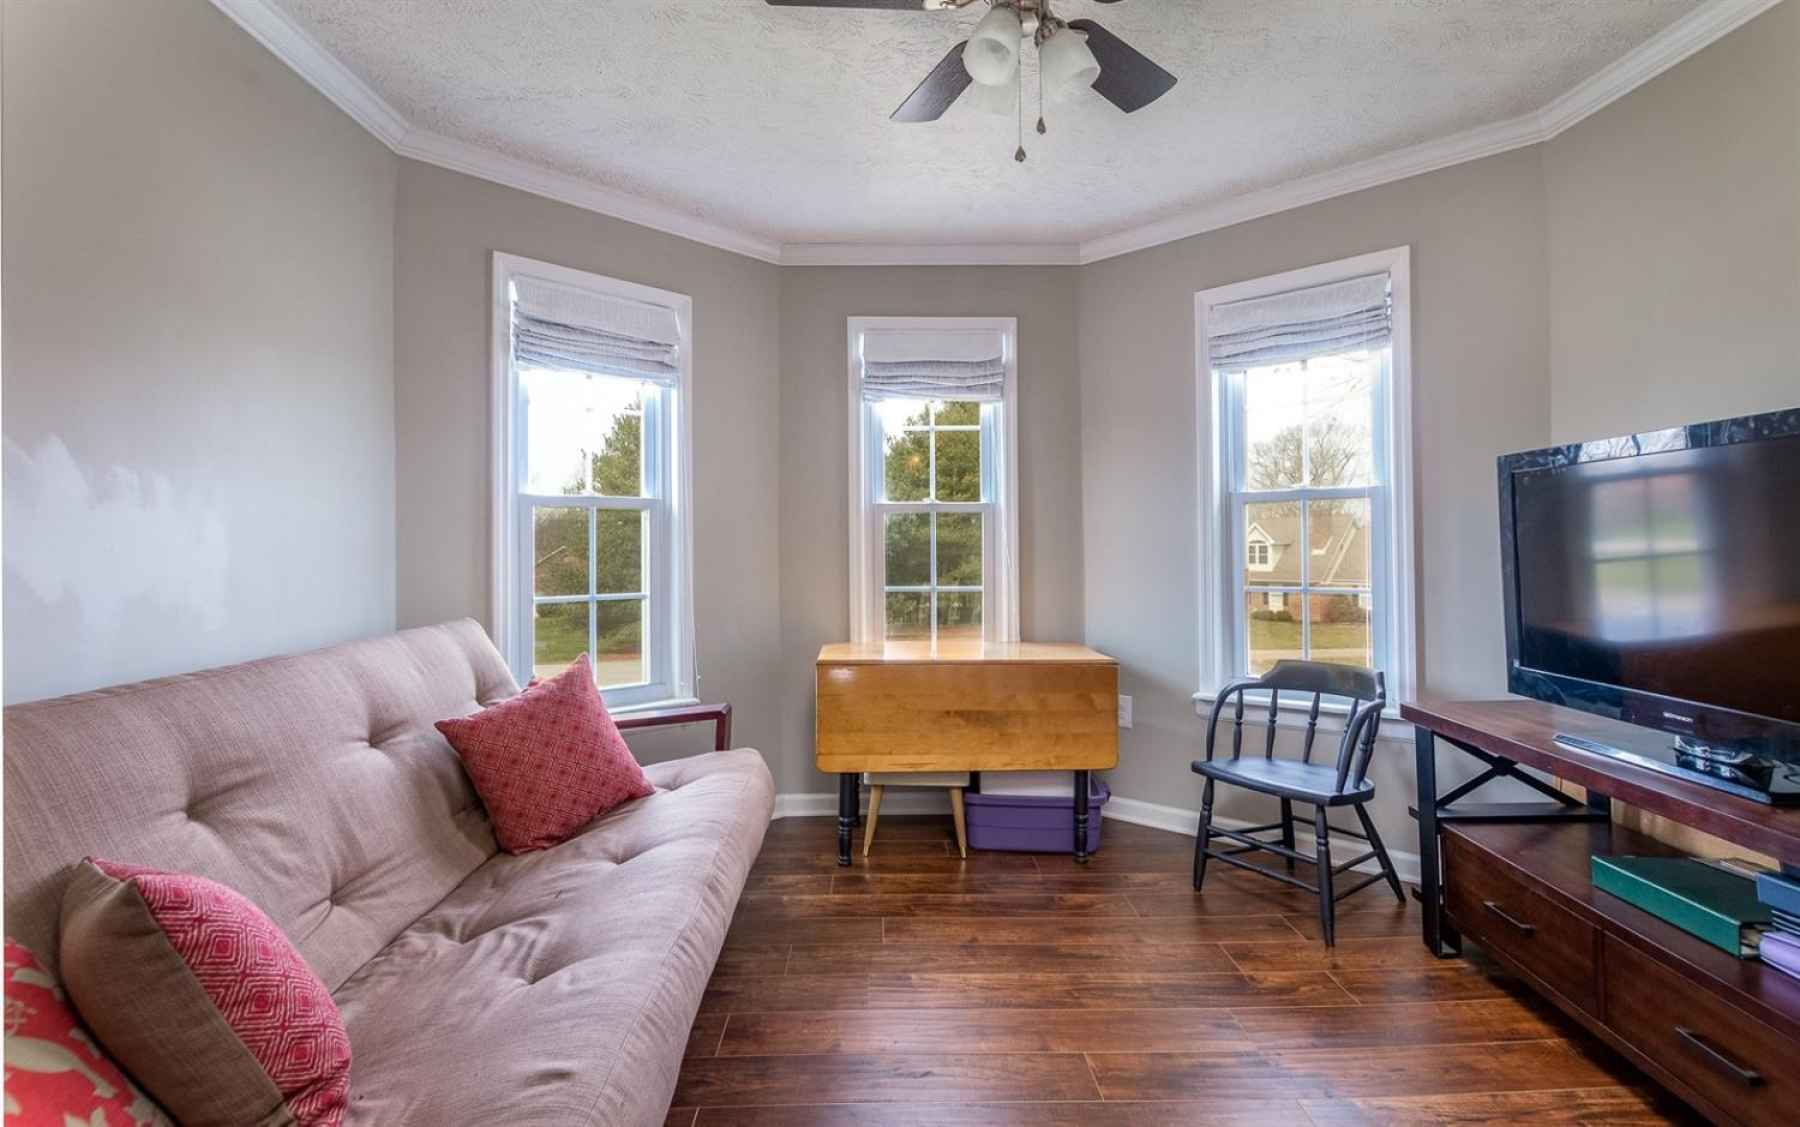 The bonus room on the second level is ideal for a second family room, play room or craft room!